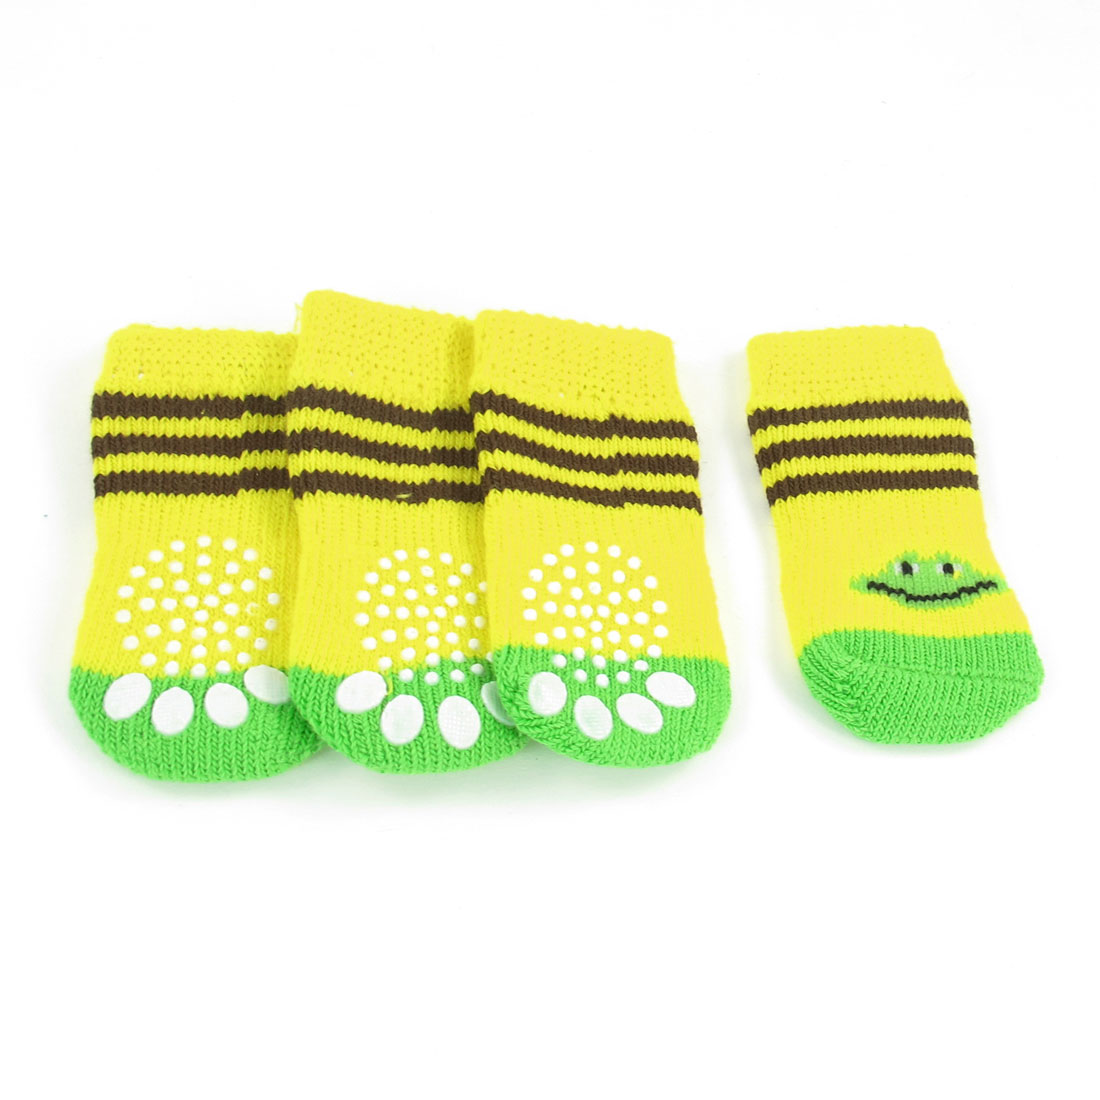 2 Pairs Striped Paw Pattern Acrylic Warm Pet Dog Puppy Socks Yellow Green Size M